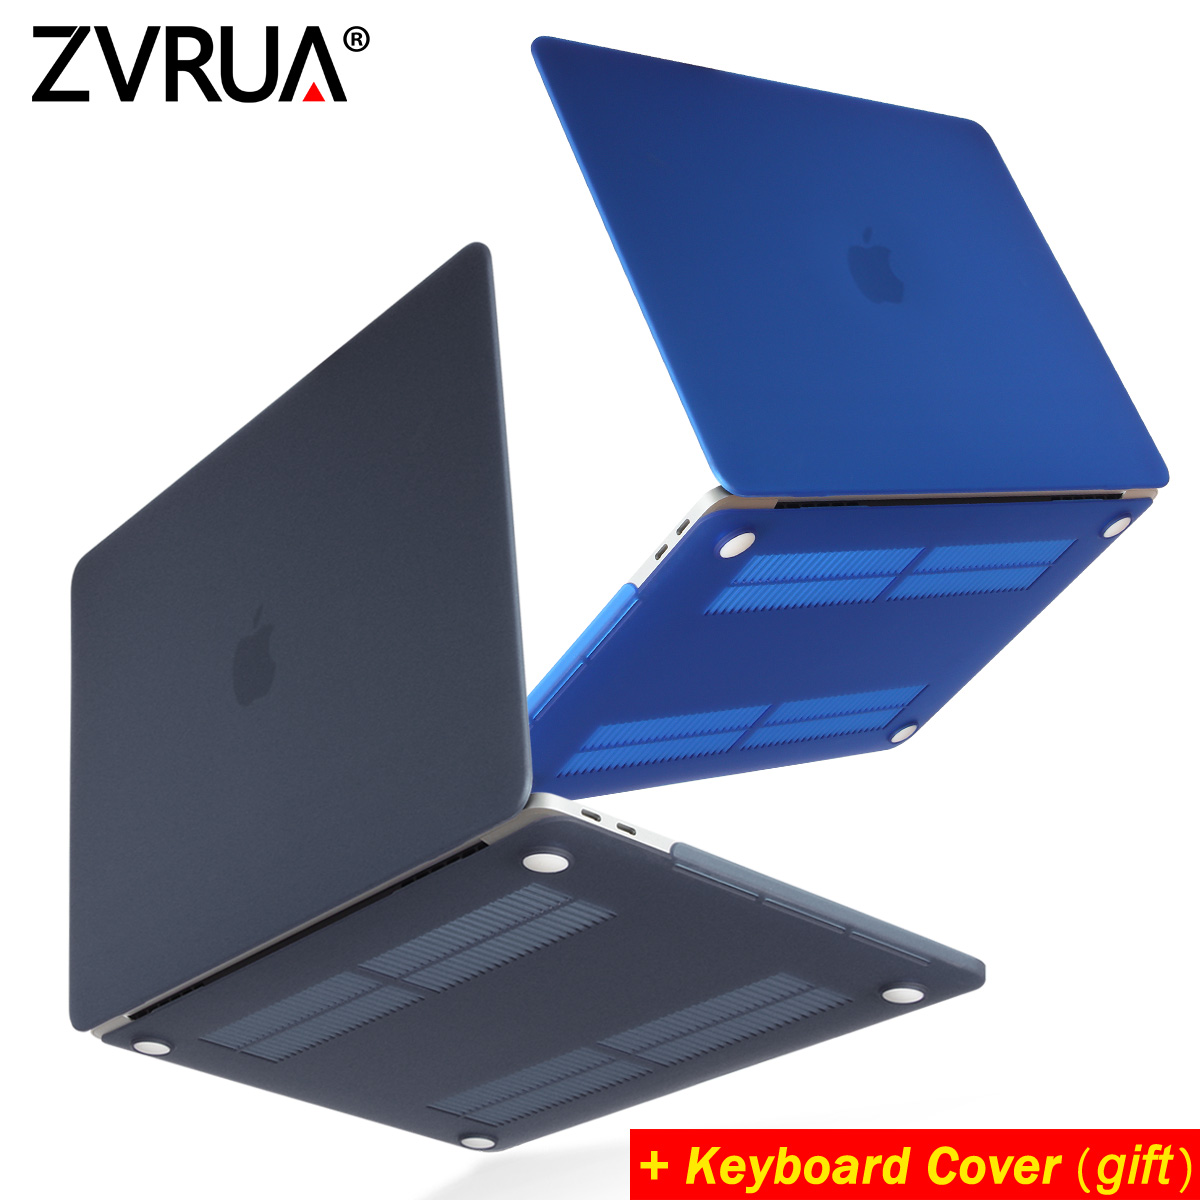 все цены на ZVRUA HOT Sell laptop Case For Apple macbook Air Pro Retina 11 12 13 15 For Mac book 13.3 inch with Touch Bar +Keyboard Cover онлайн